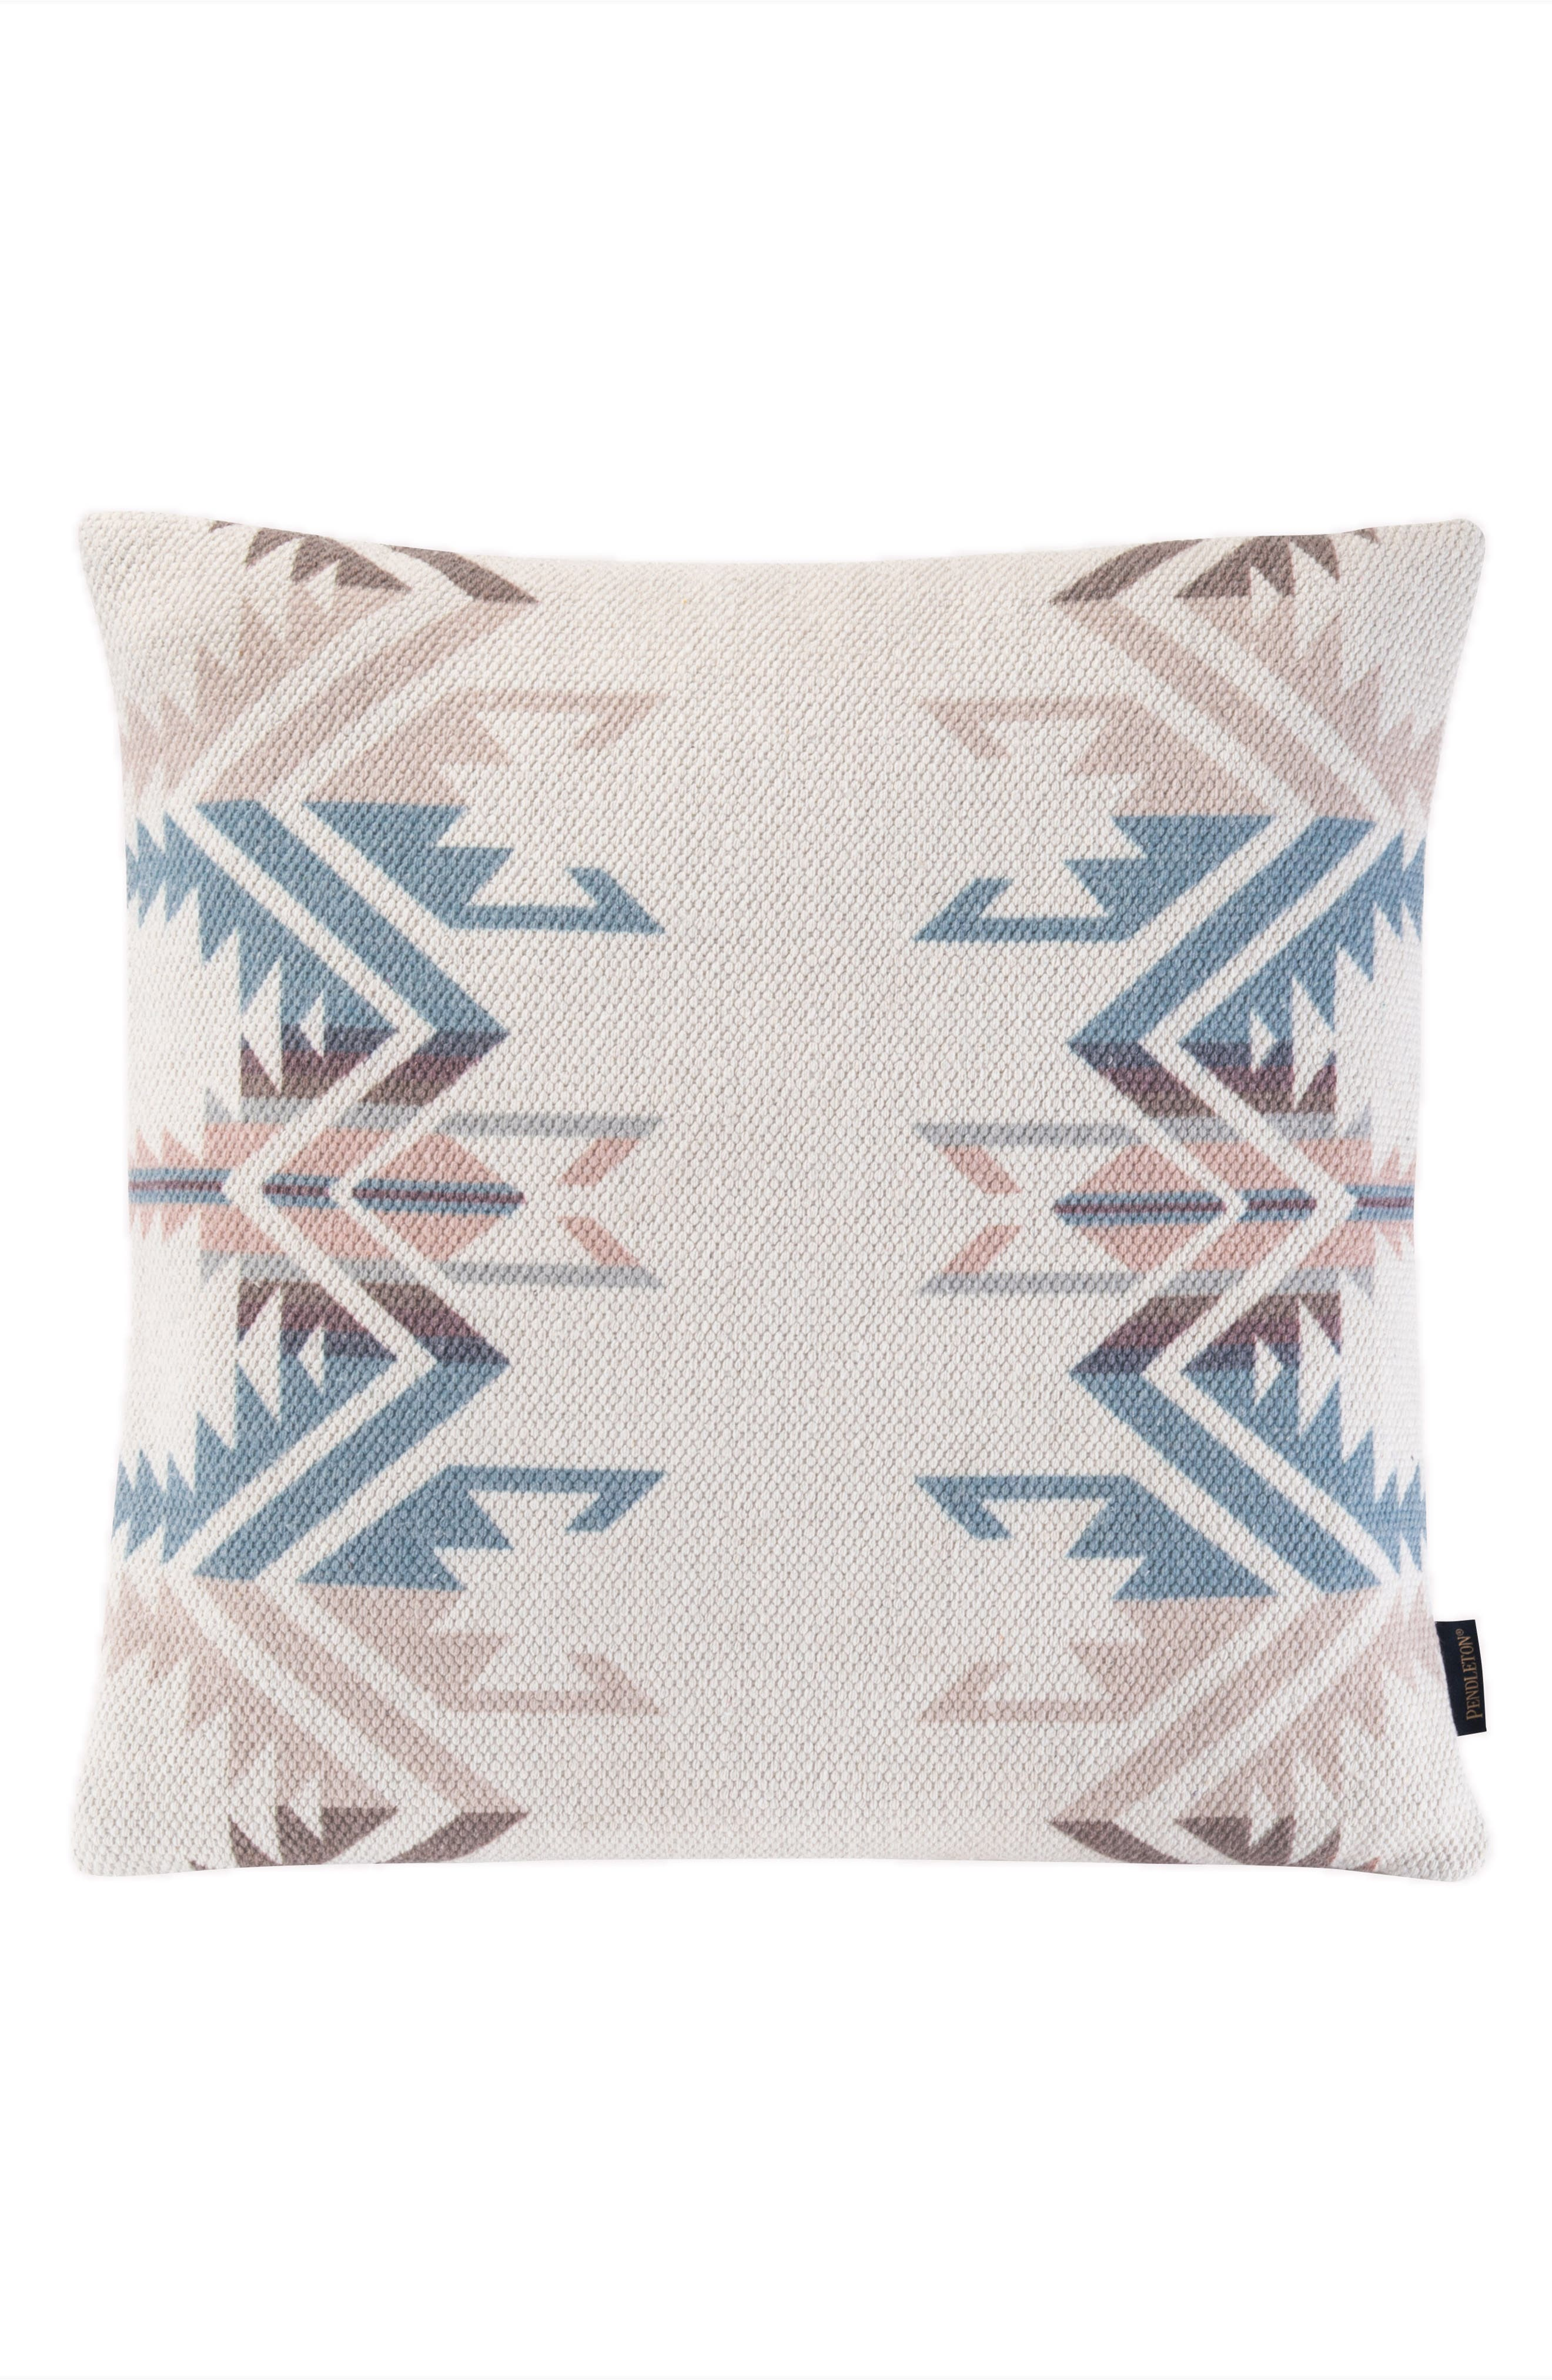 White Sands Accent Pillow,                         Main,                         color, Ivory